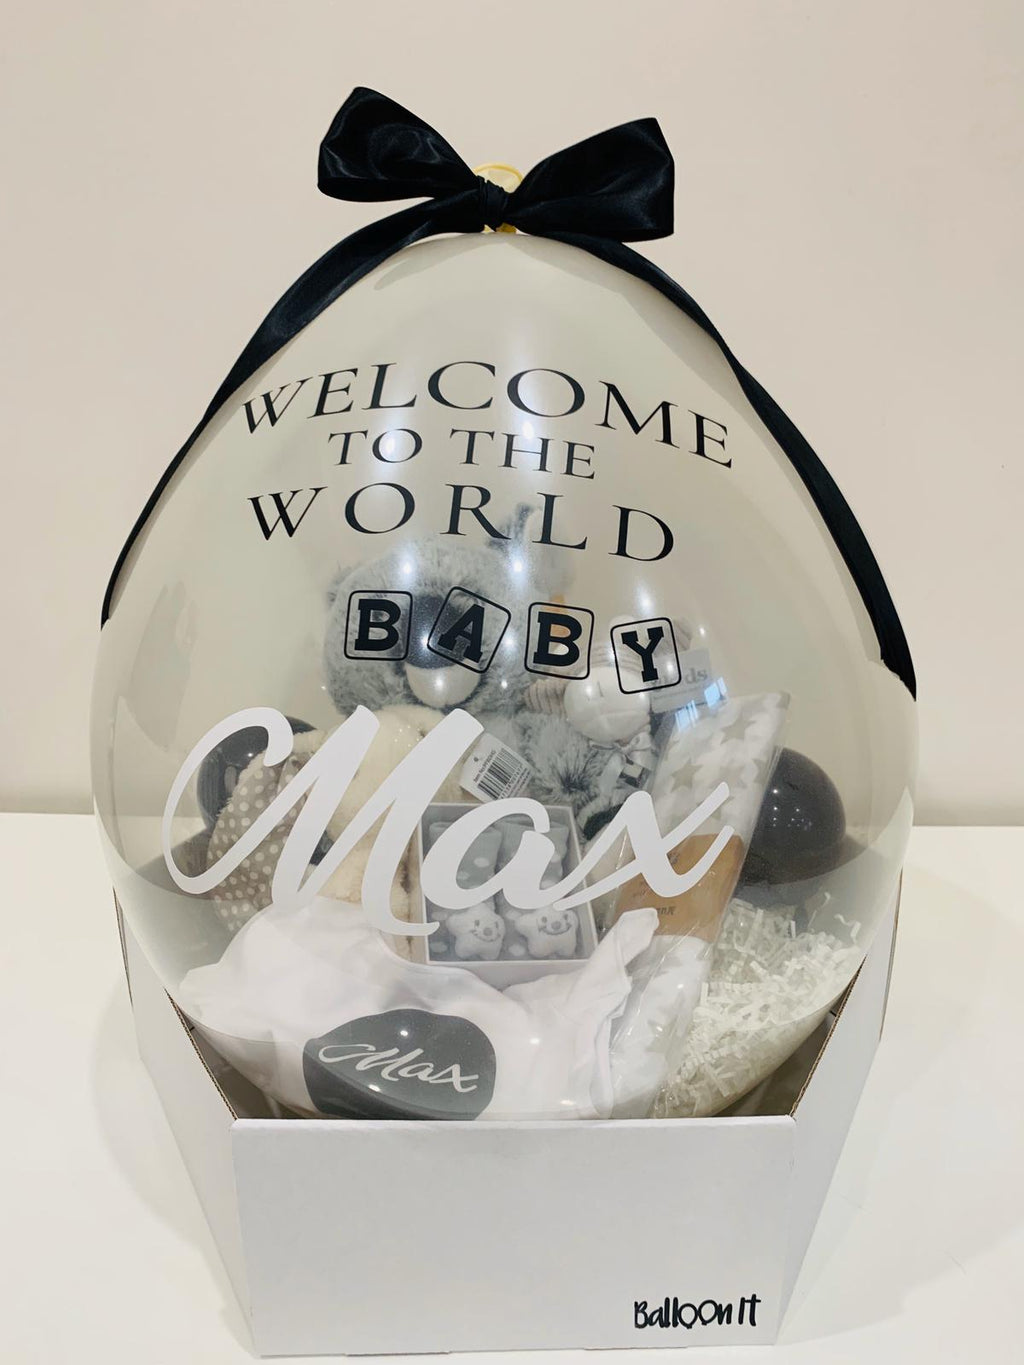 New Baby personalised balloon gift